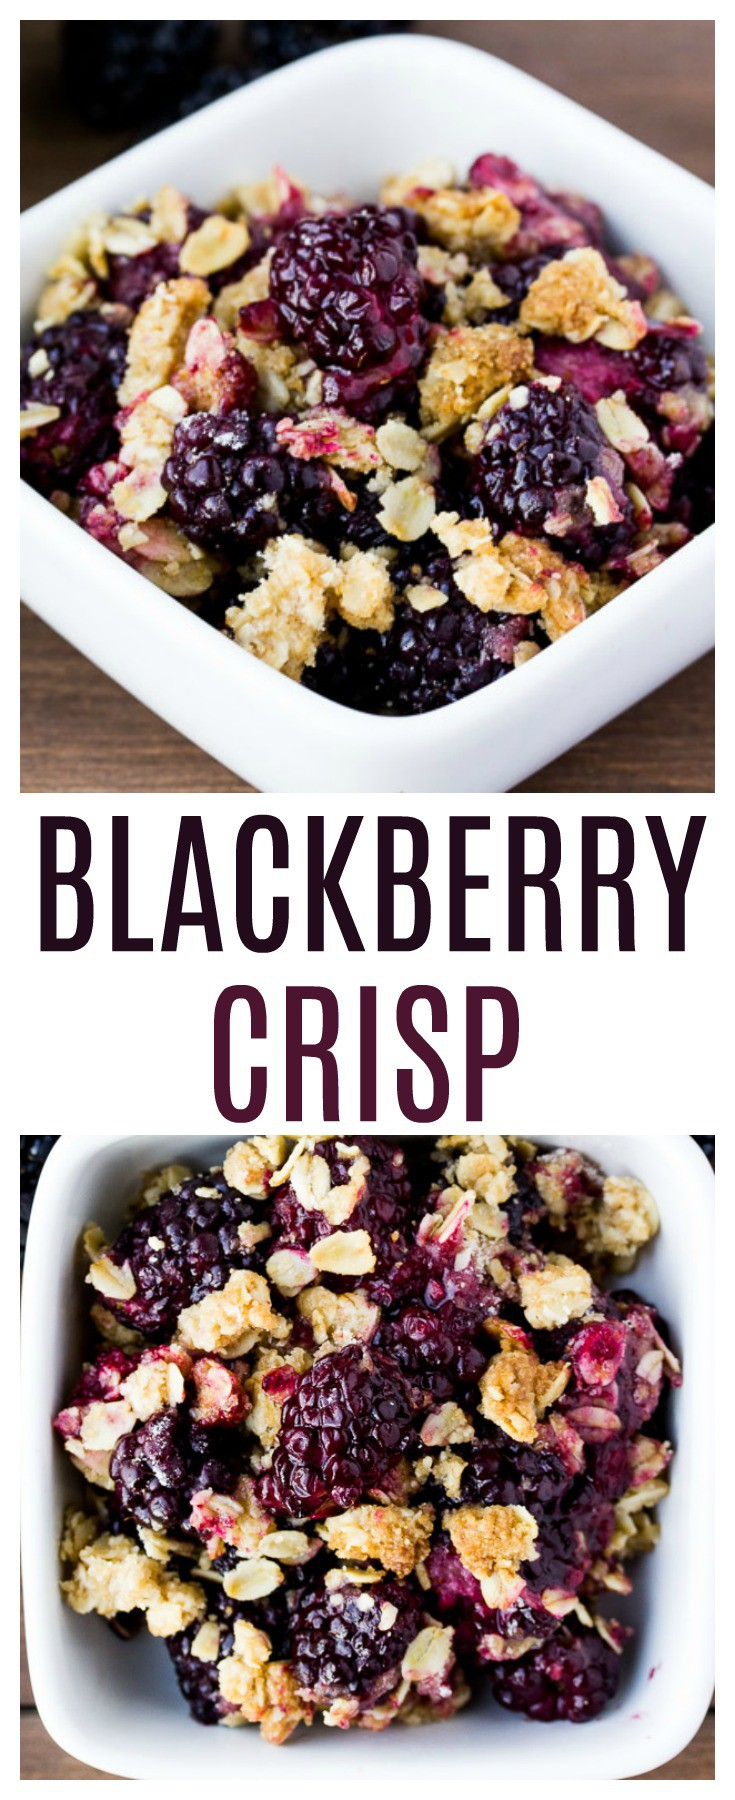 This easy blackberry crisp recipe is the perfect summer dessert! It's simple and quick to make and tastes great with ice cream! You can easily make it gluten free by swapping out the flour. | #dlbrecipes #glutenfree #blackberrycrisp #blackberries #dessert